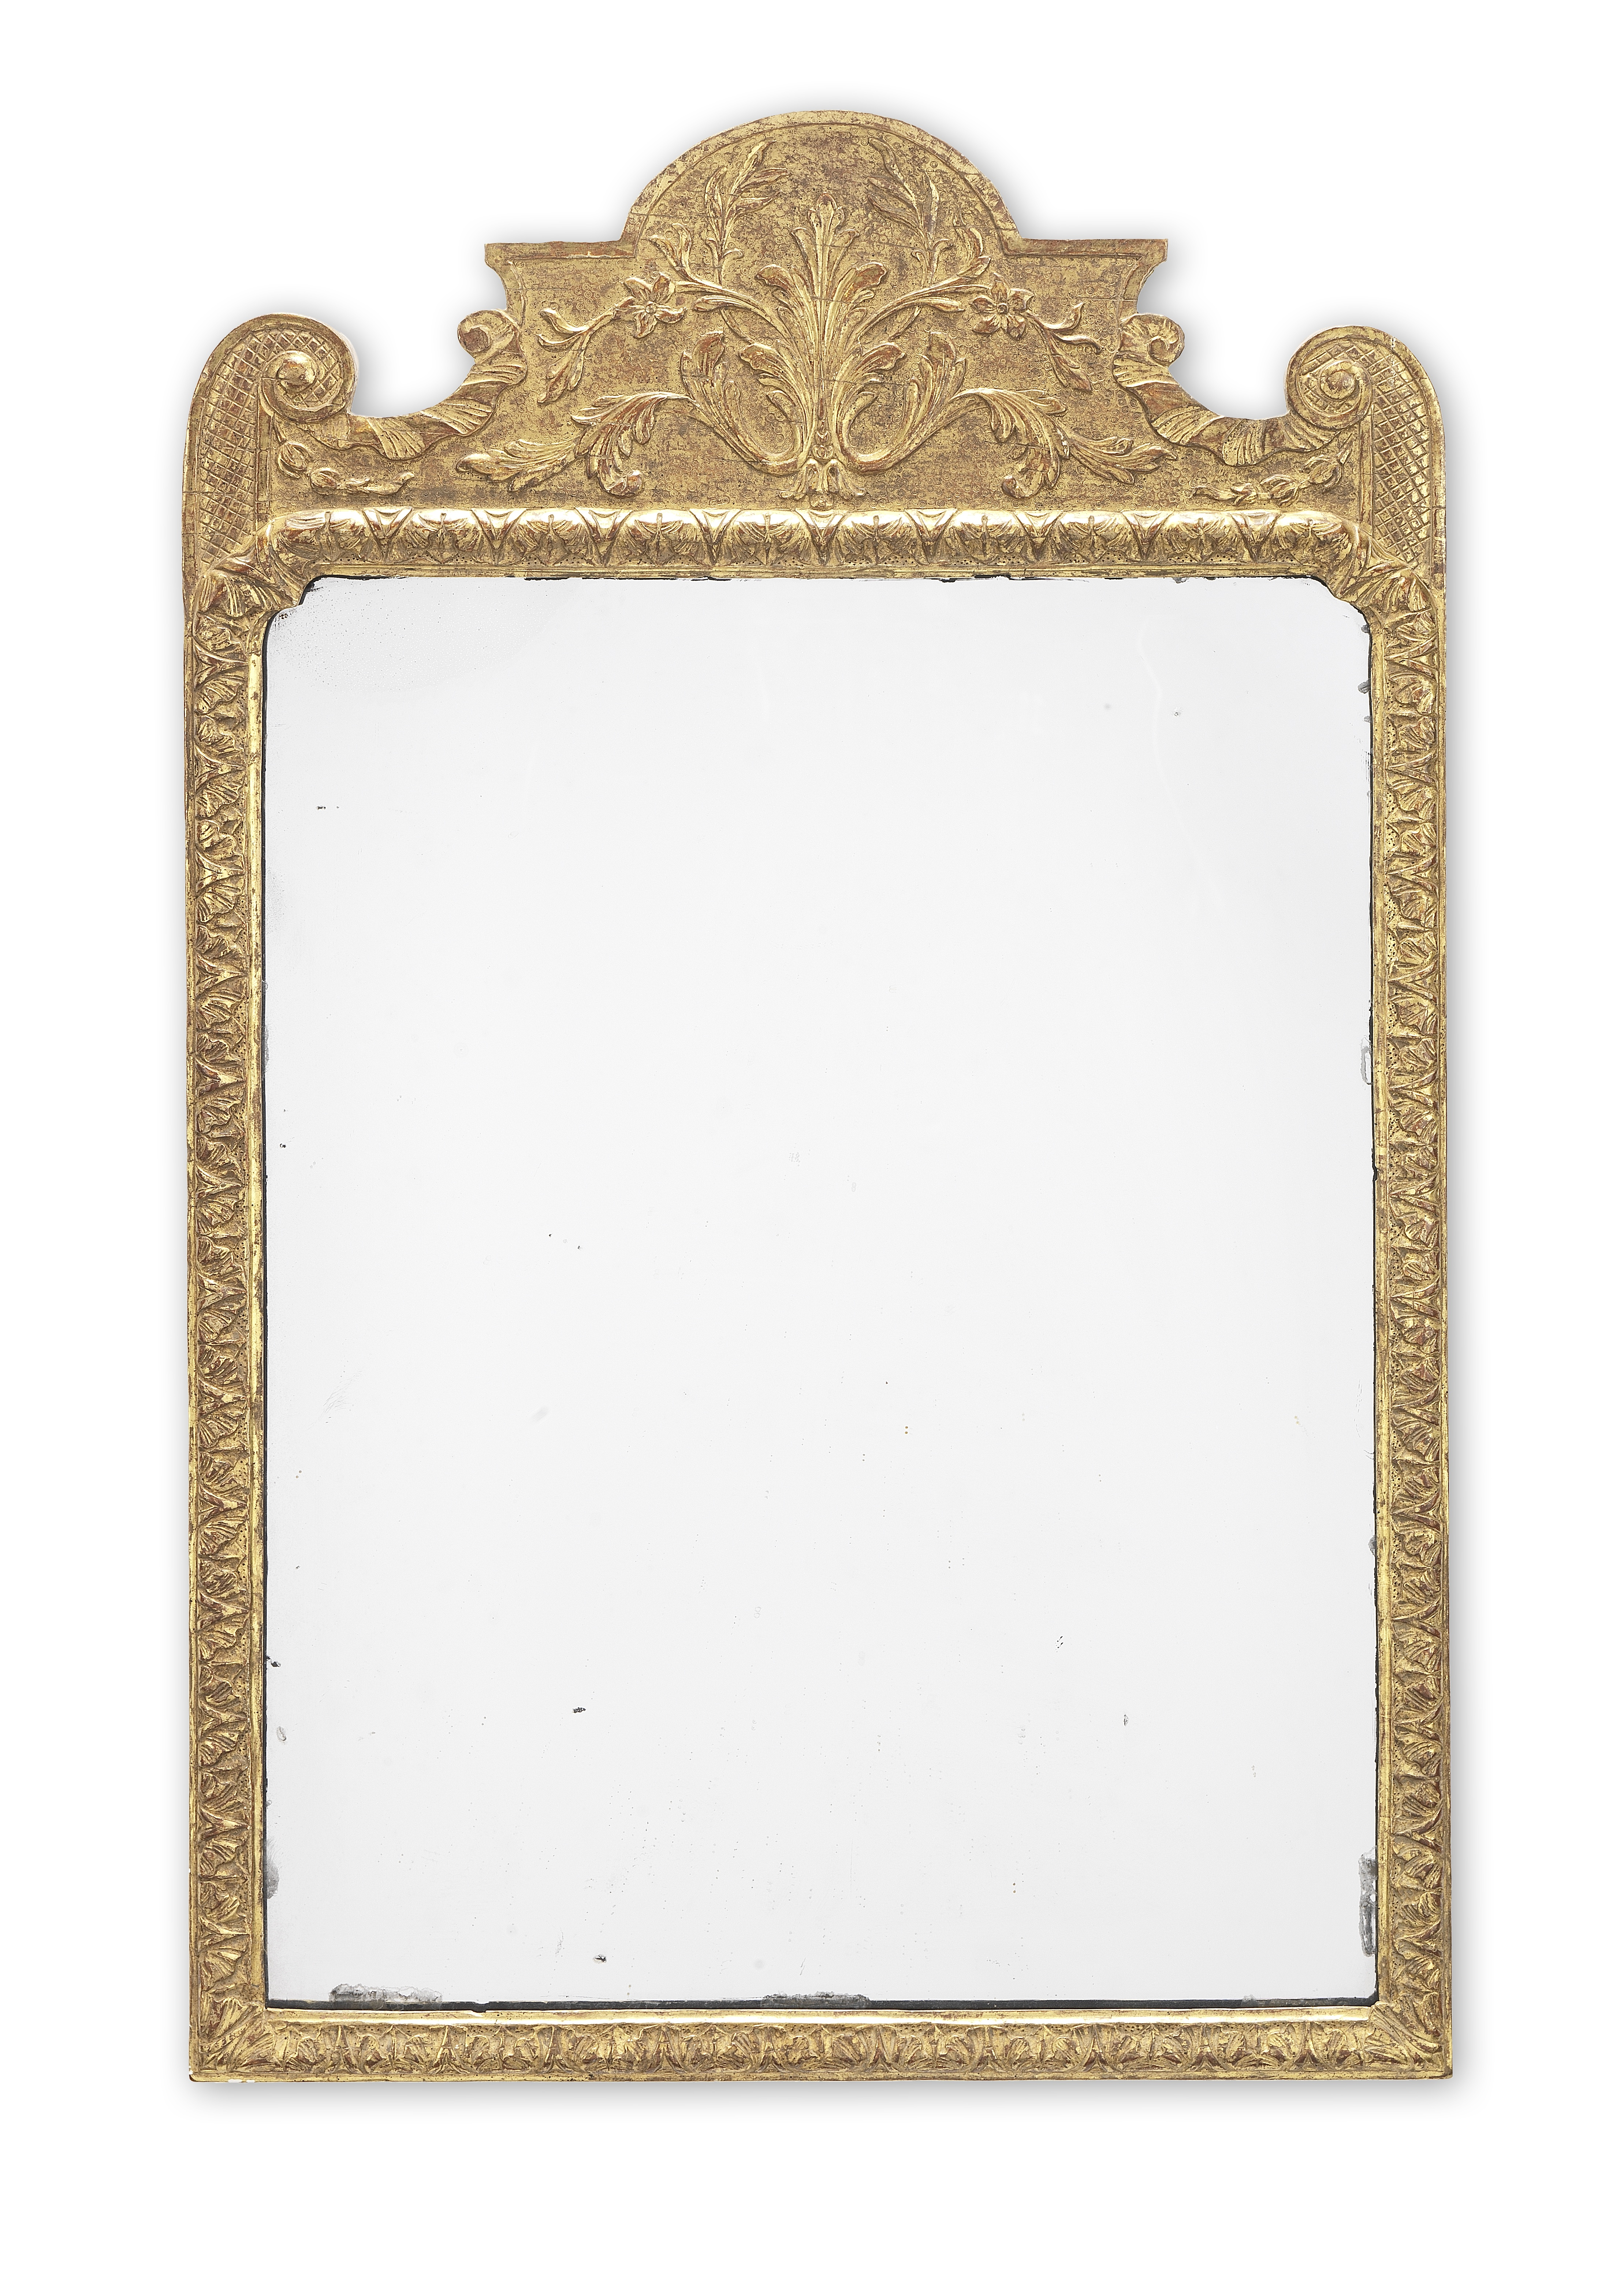 Lot 117 - A George I gilt gesso mirror of small proportions